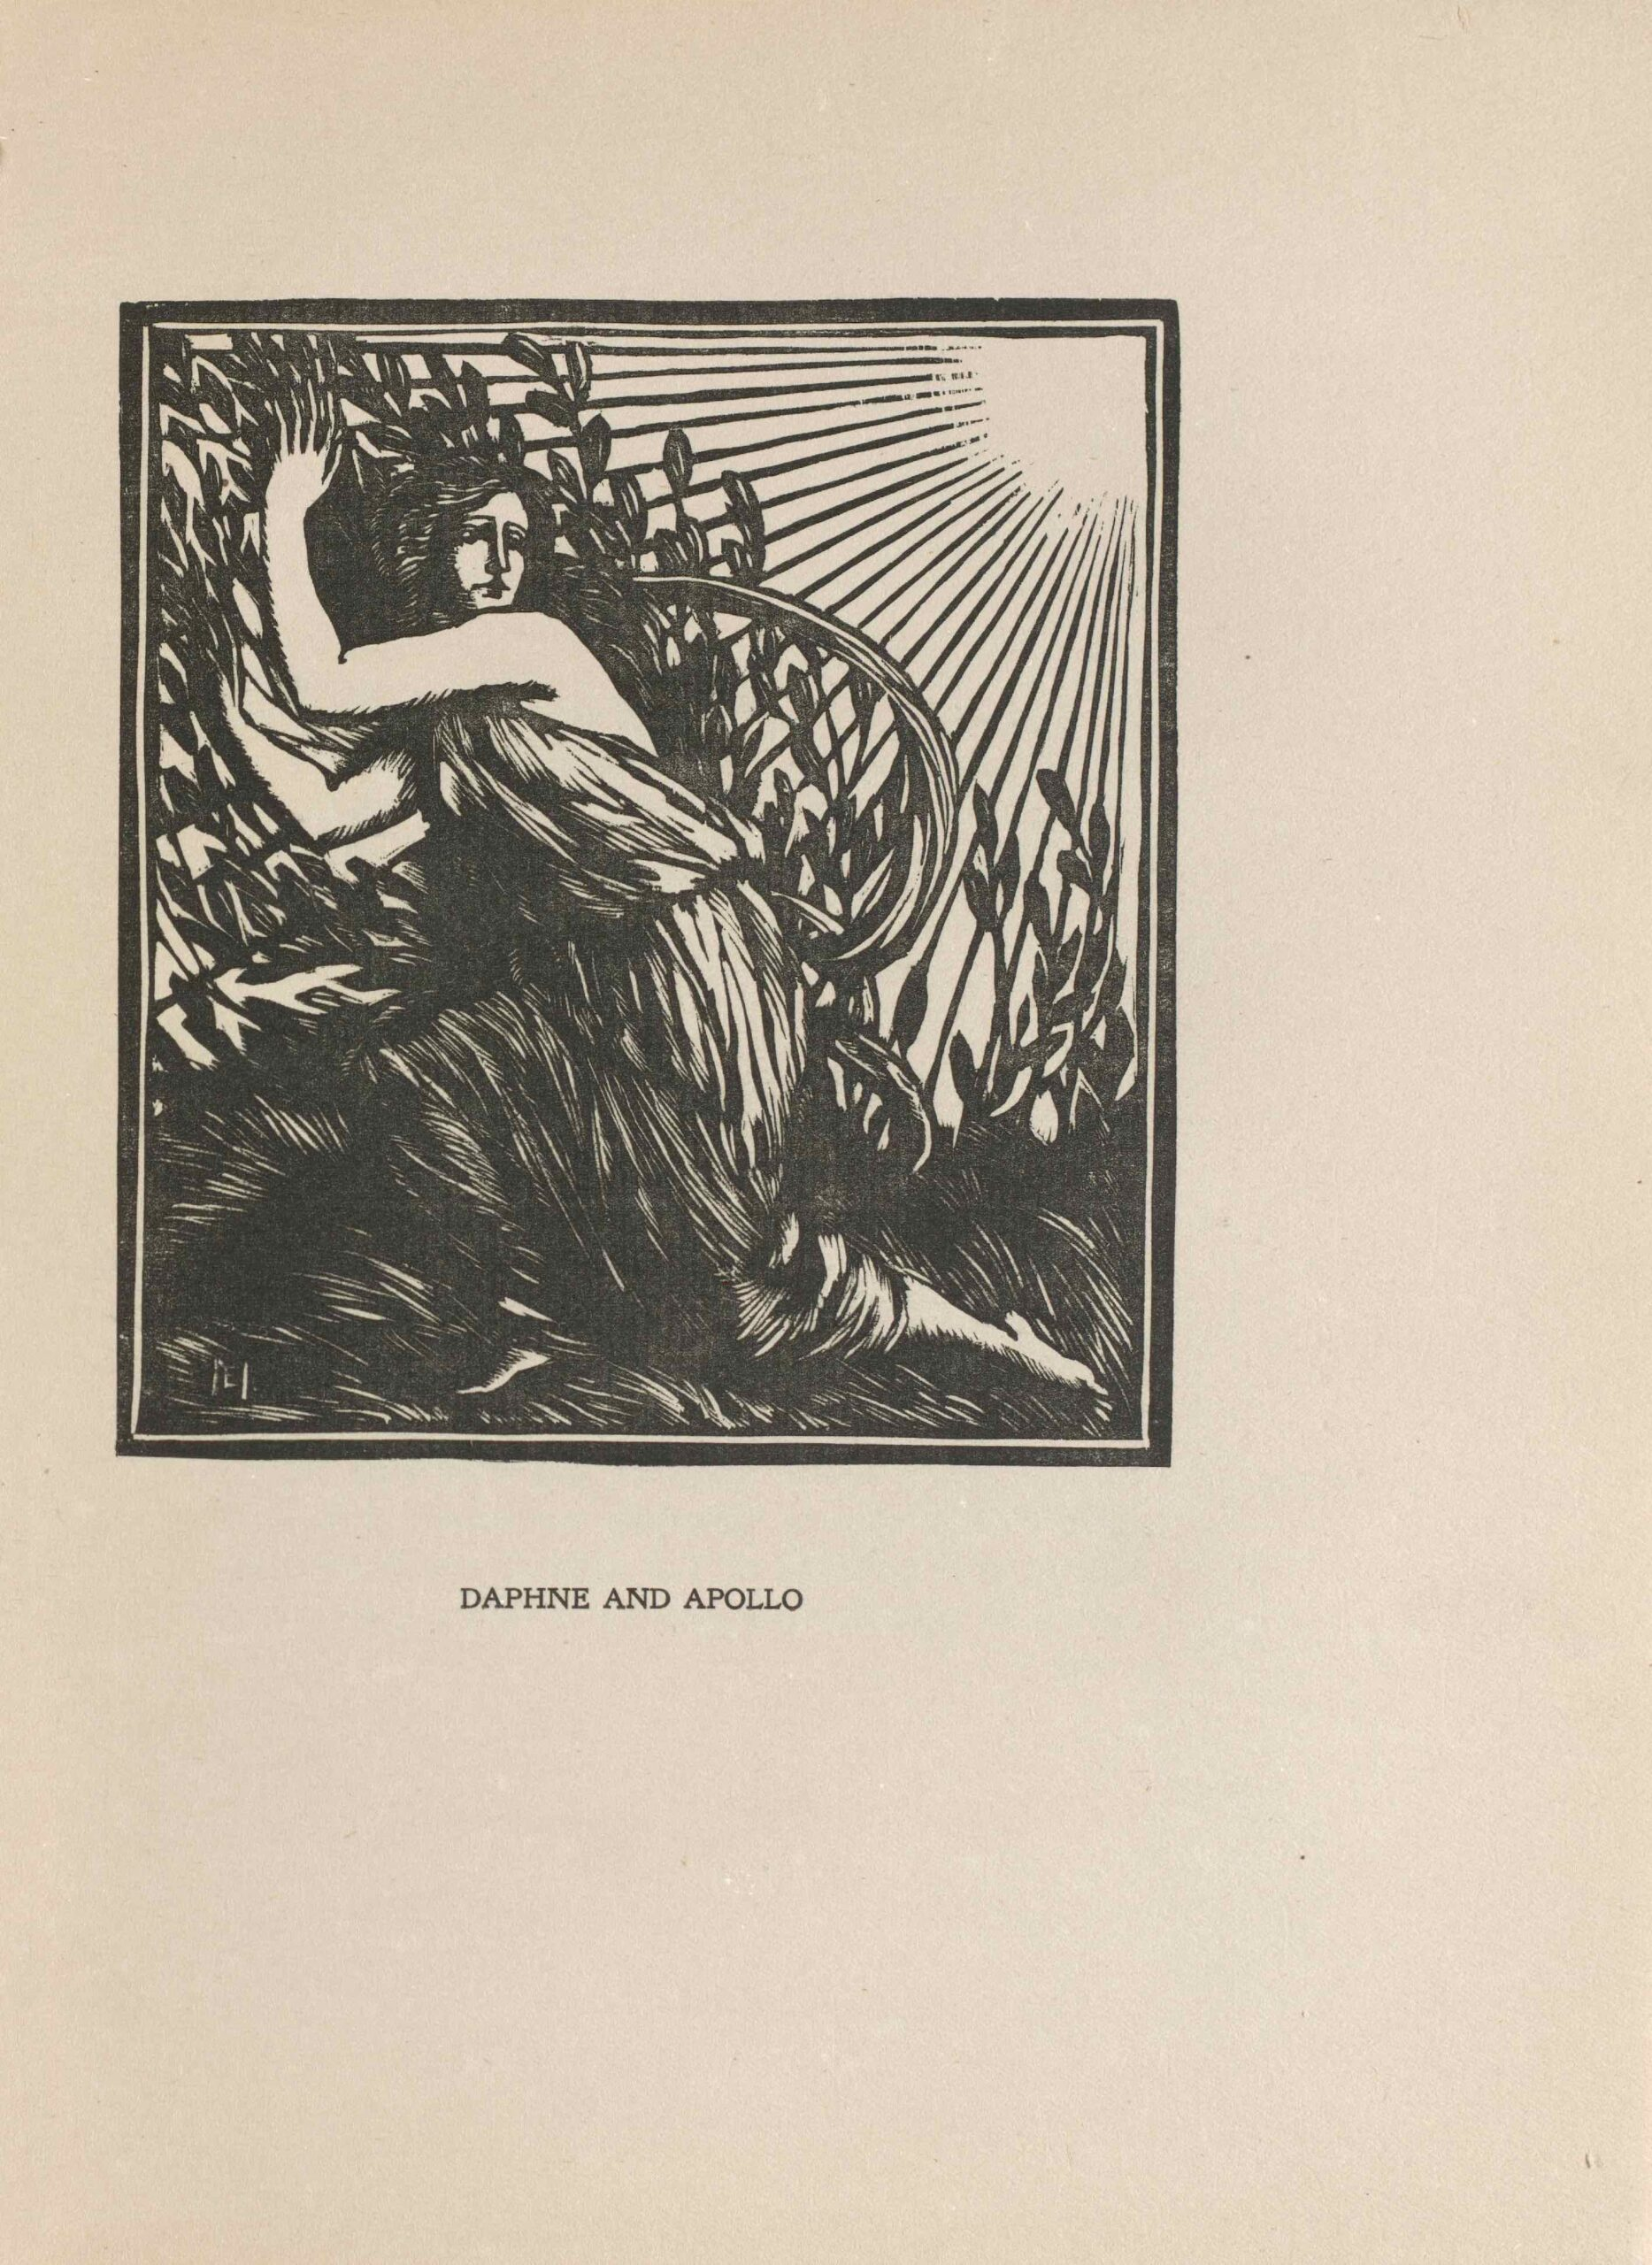 The image is in portrait orientation and is centered on the page within a rectilinear border. The image printed in black. In the foreground, a woman [the nymph, Daphne] is kneeling on a bed of long plants and is looking over her shoulder to the right. Her body remains facing the left. She is next to a field of tall plants and shrubs full of leaves, likely laurel bushes. The woman's arms and hands are held upwards around her eye-level and are reaching into the field. She is draped in a loose fabric, but her arms, neck, face, and feet are exposed. The sun is represented by a blank, circular space in the top right of the image. Sun rays are shining down onto the field and the woman, evident by the shadow on her face. According to the myth, the sun is the god Apollo.